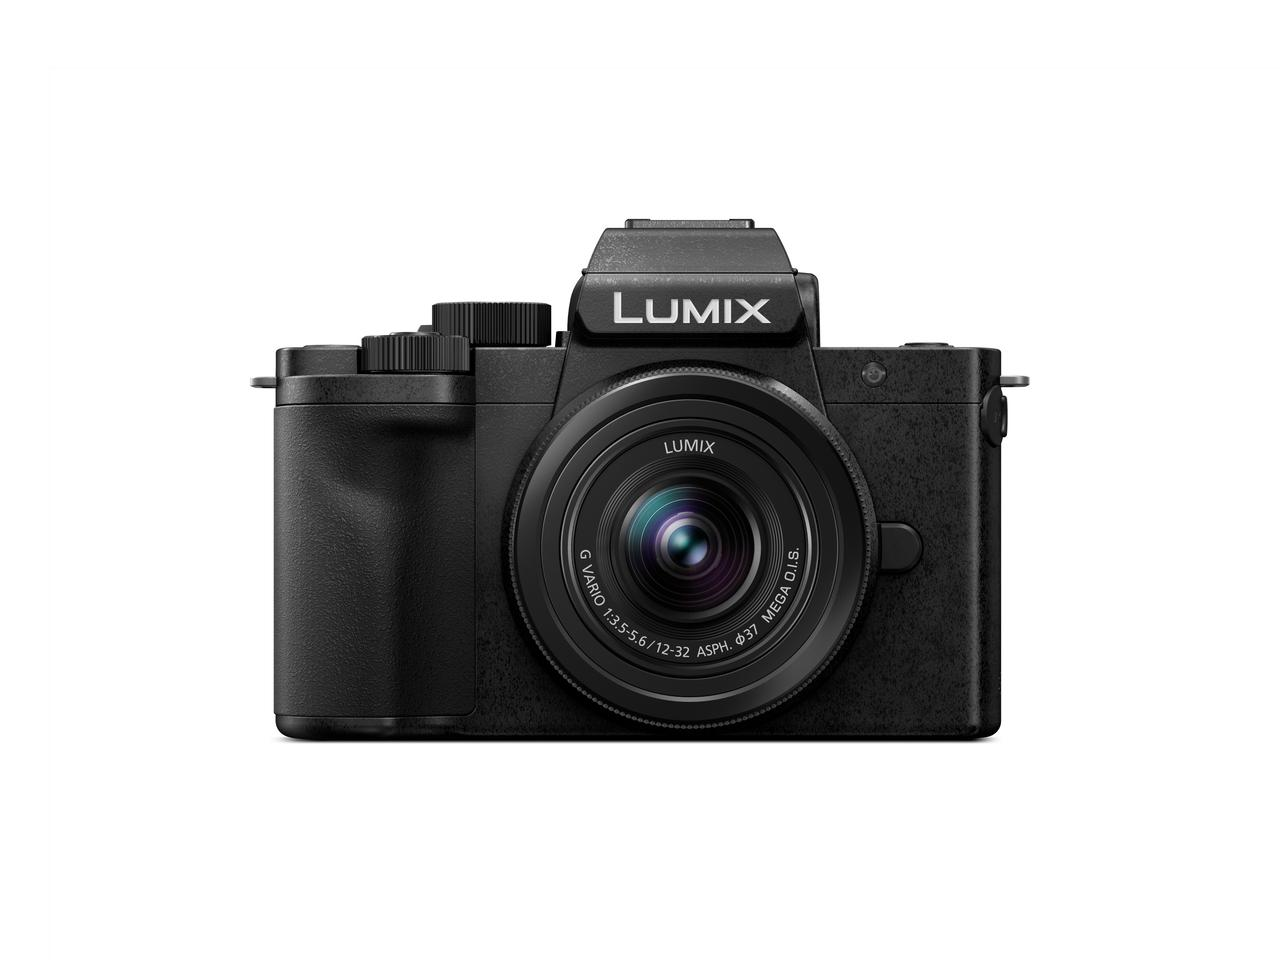 The Lumix G100 measures 4.55 x 3.24 x 2.13 inches and weighs in at a body-only 12 oz